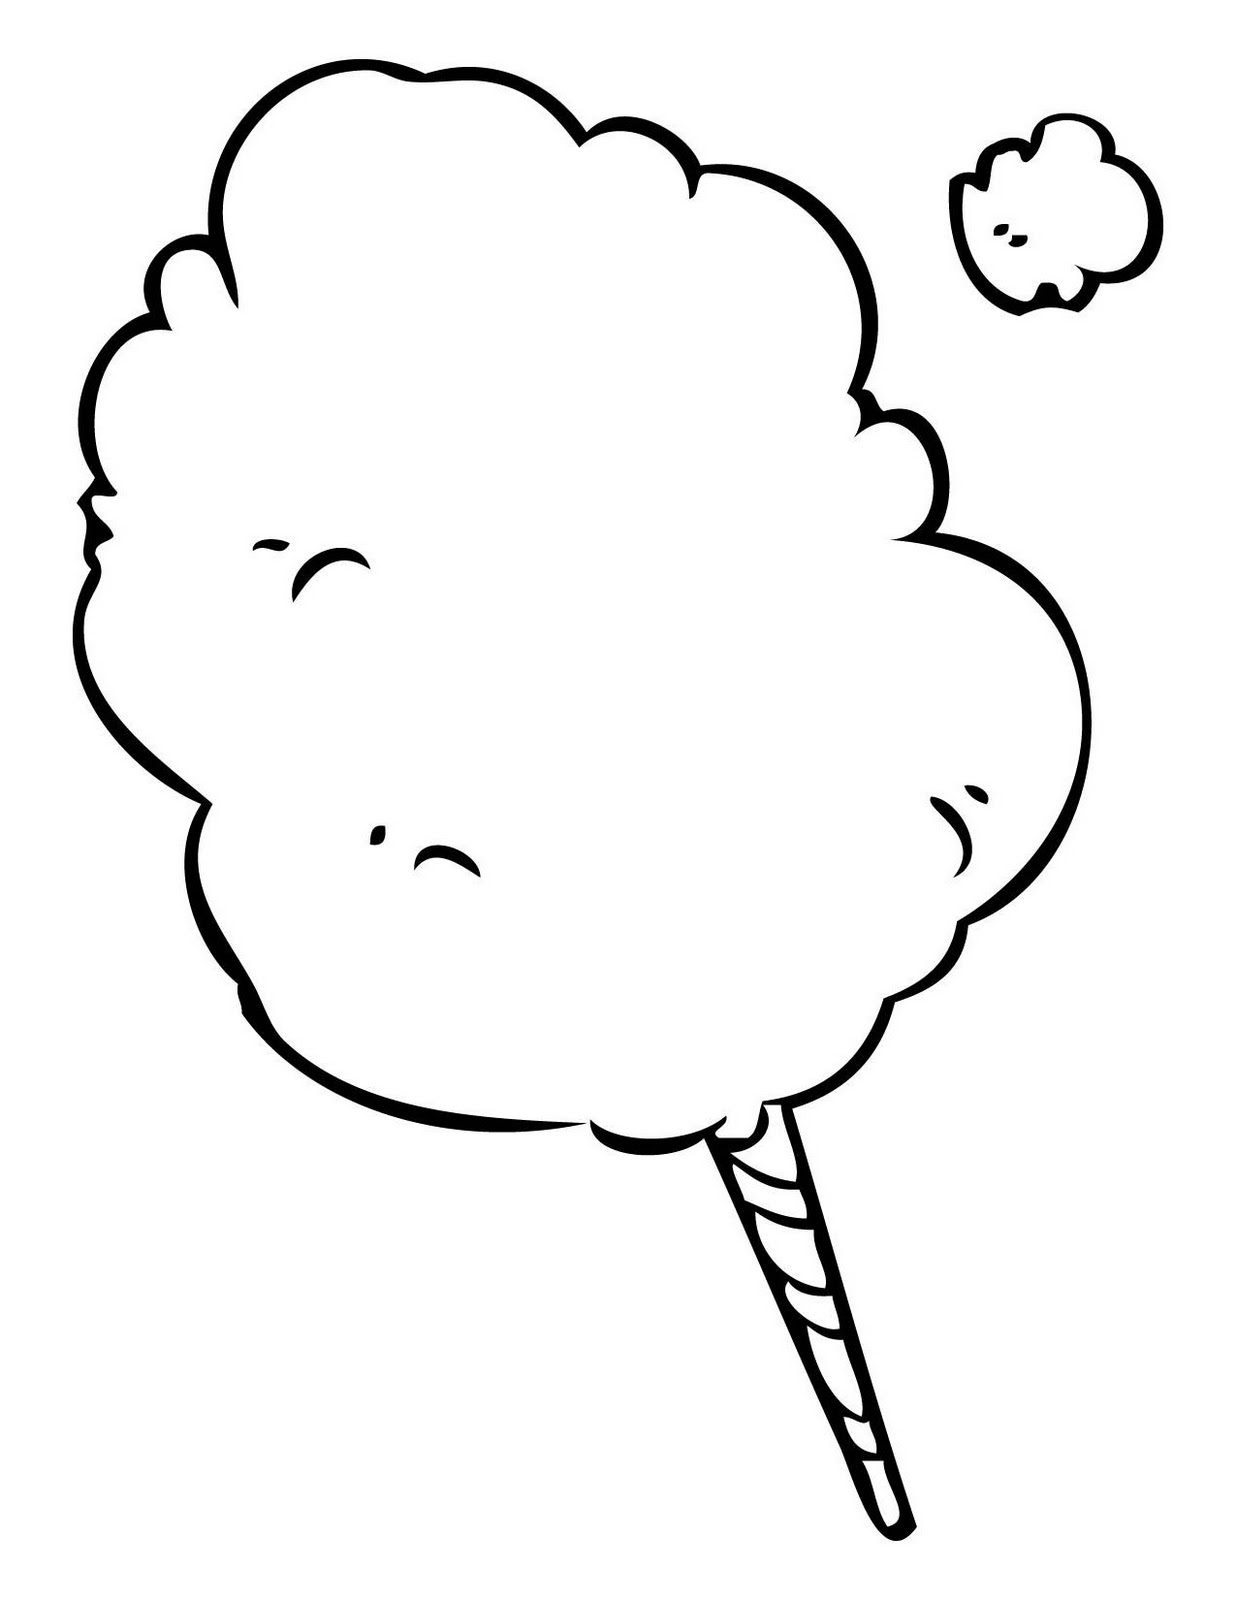 free cotton candy clipart